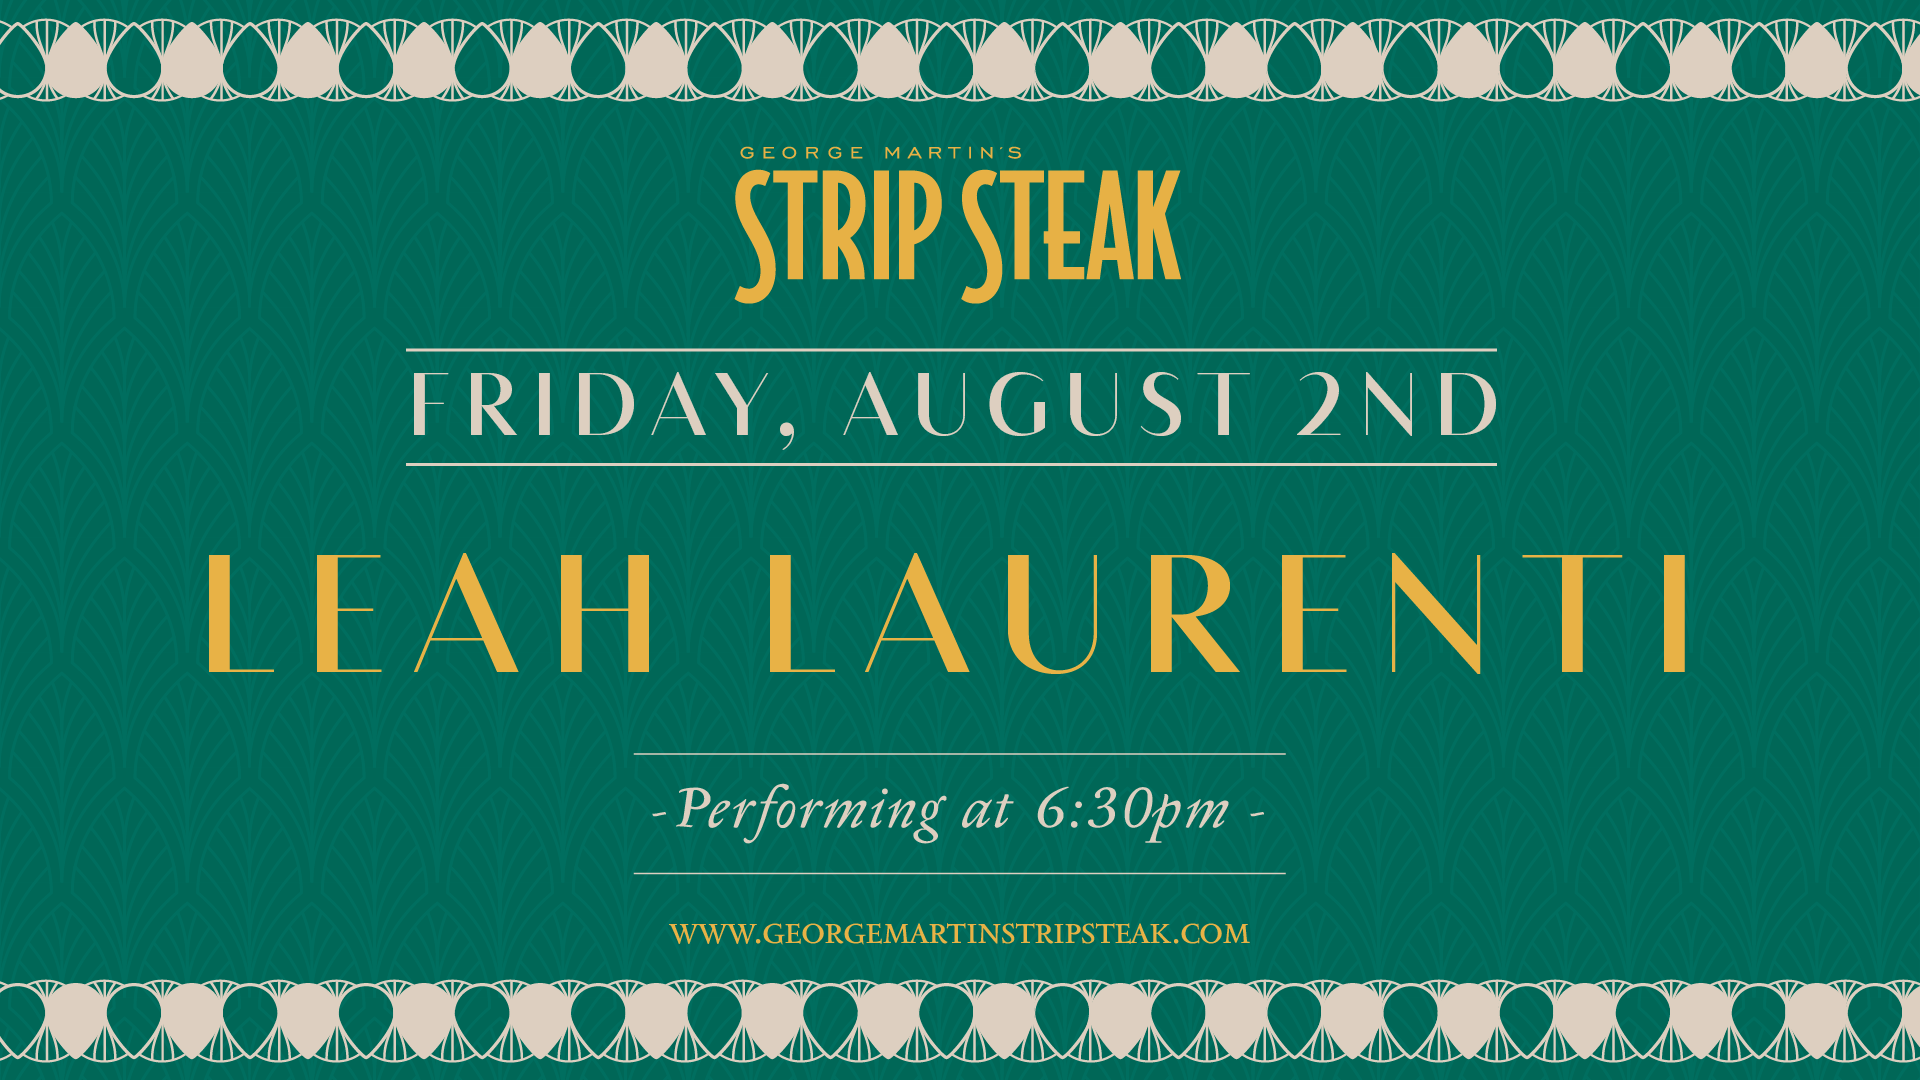 Flyer for live music with Leah Laurenti on August 2nd at 6:30pm